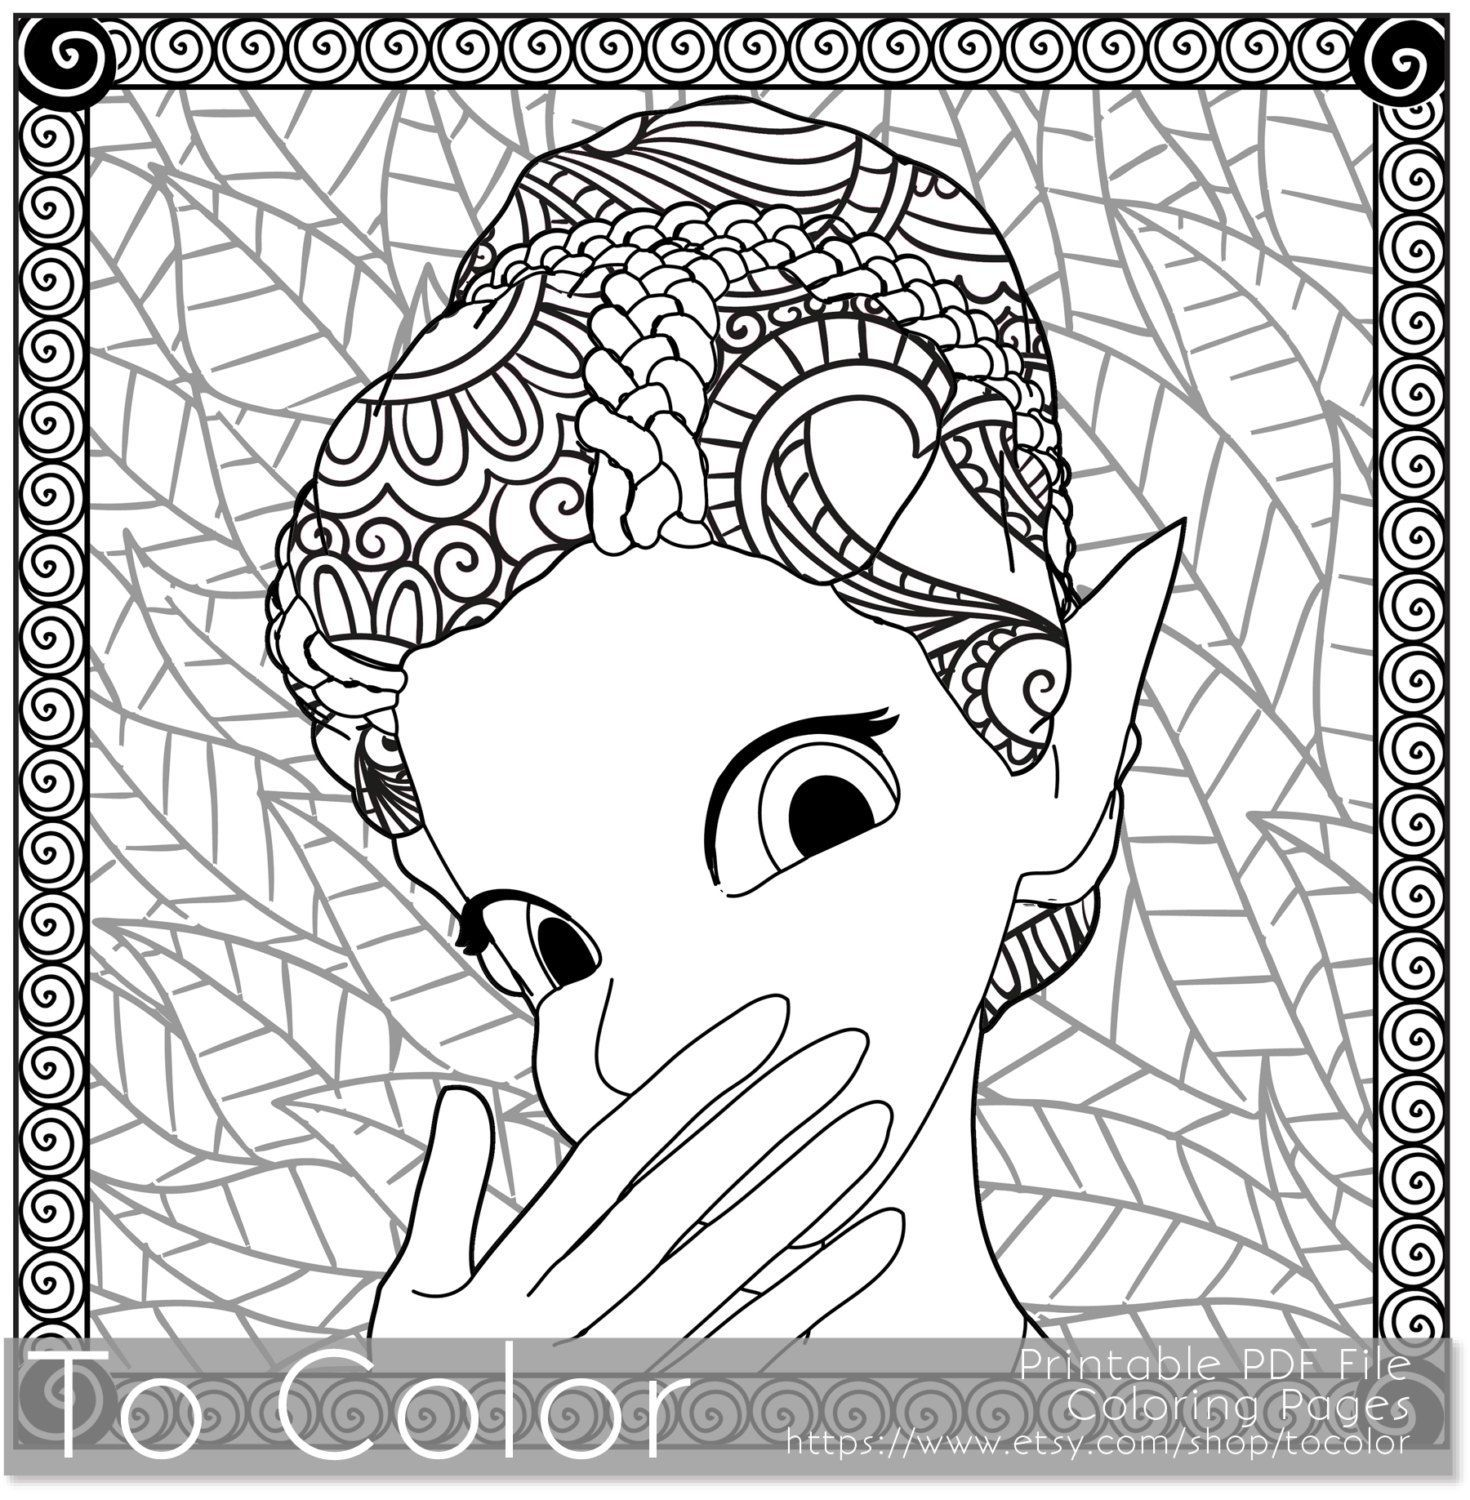 1470x1500 Shocking Coloring Pages For Adults Fantasy Instant Pics Illinois